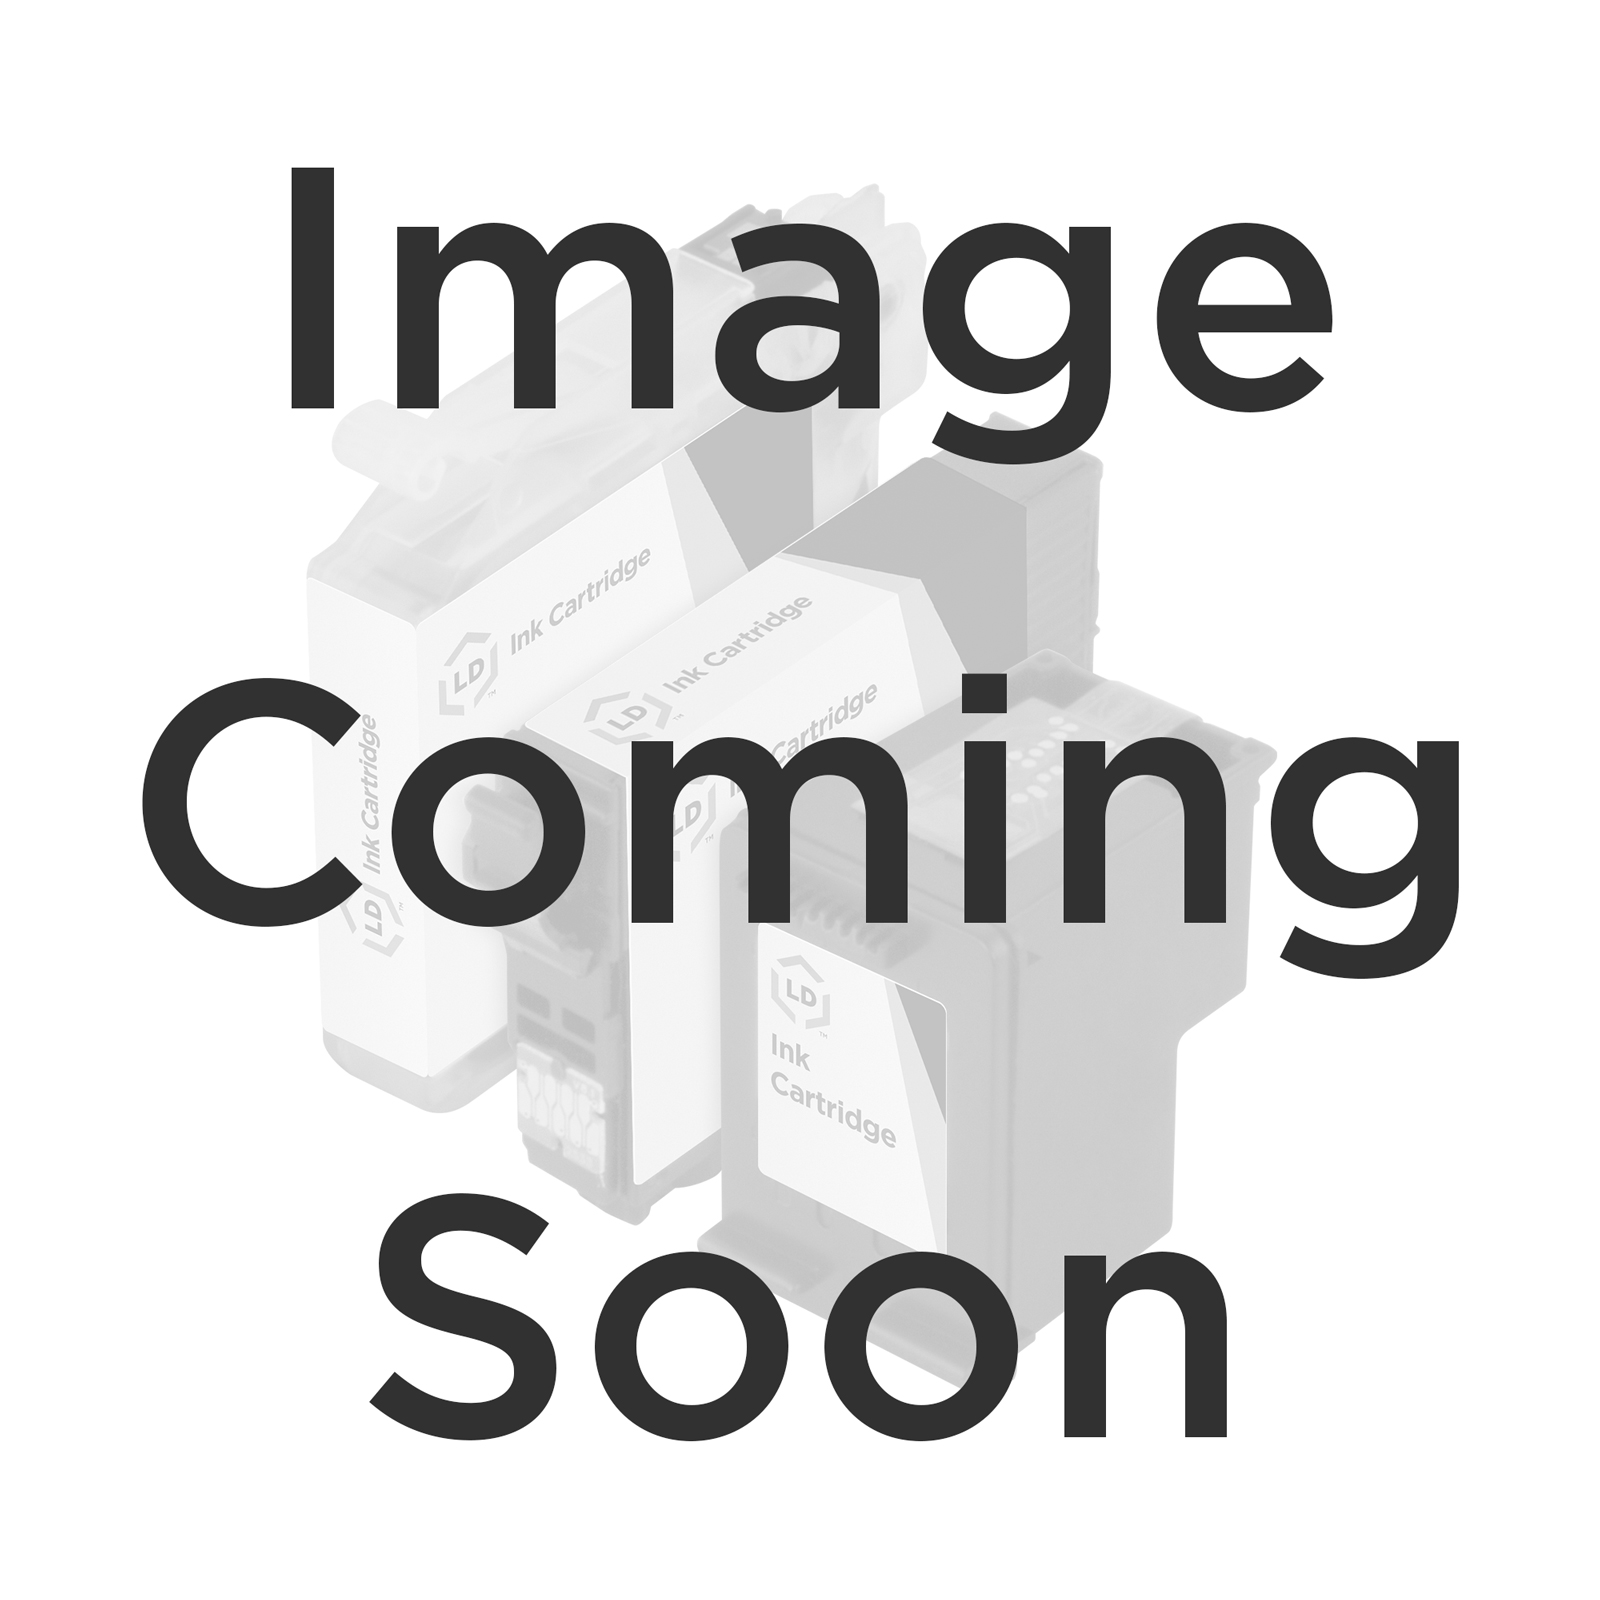 Business Source Two-Pocket Folders with Business Card Holder - 25 per box